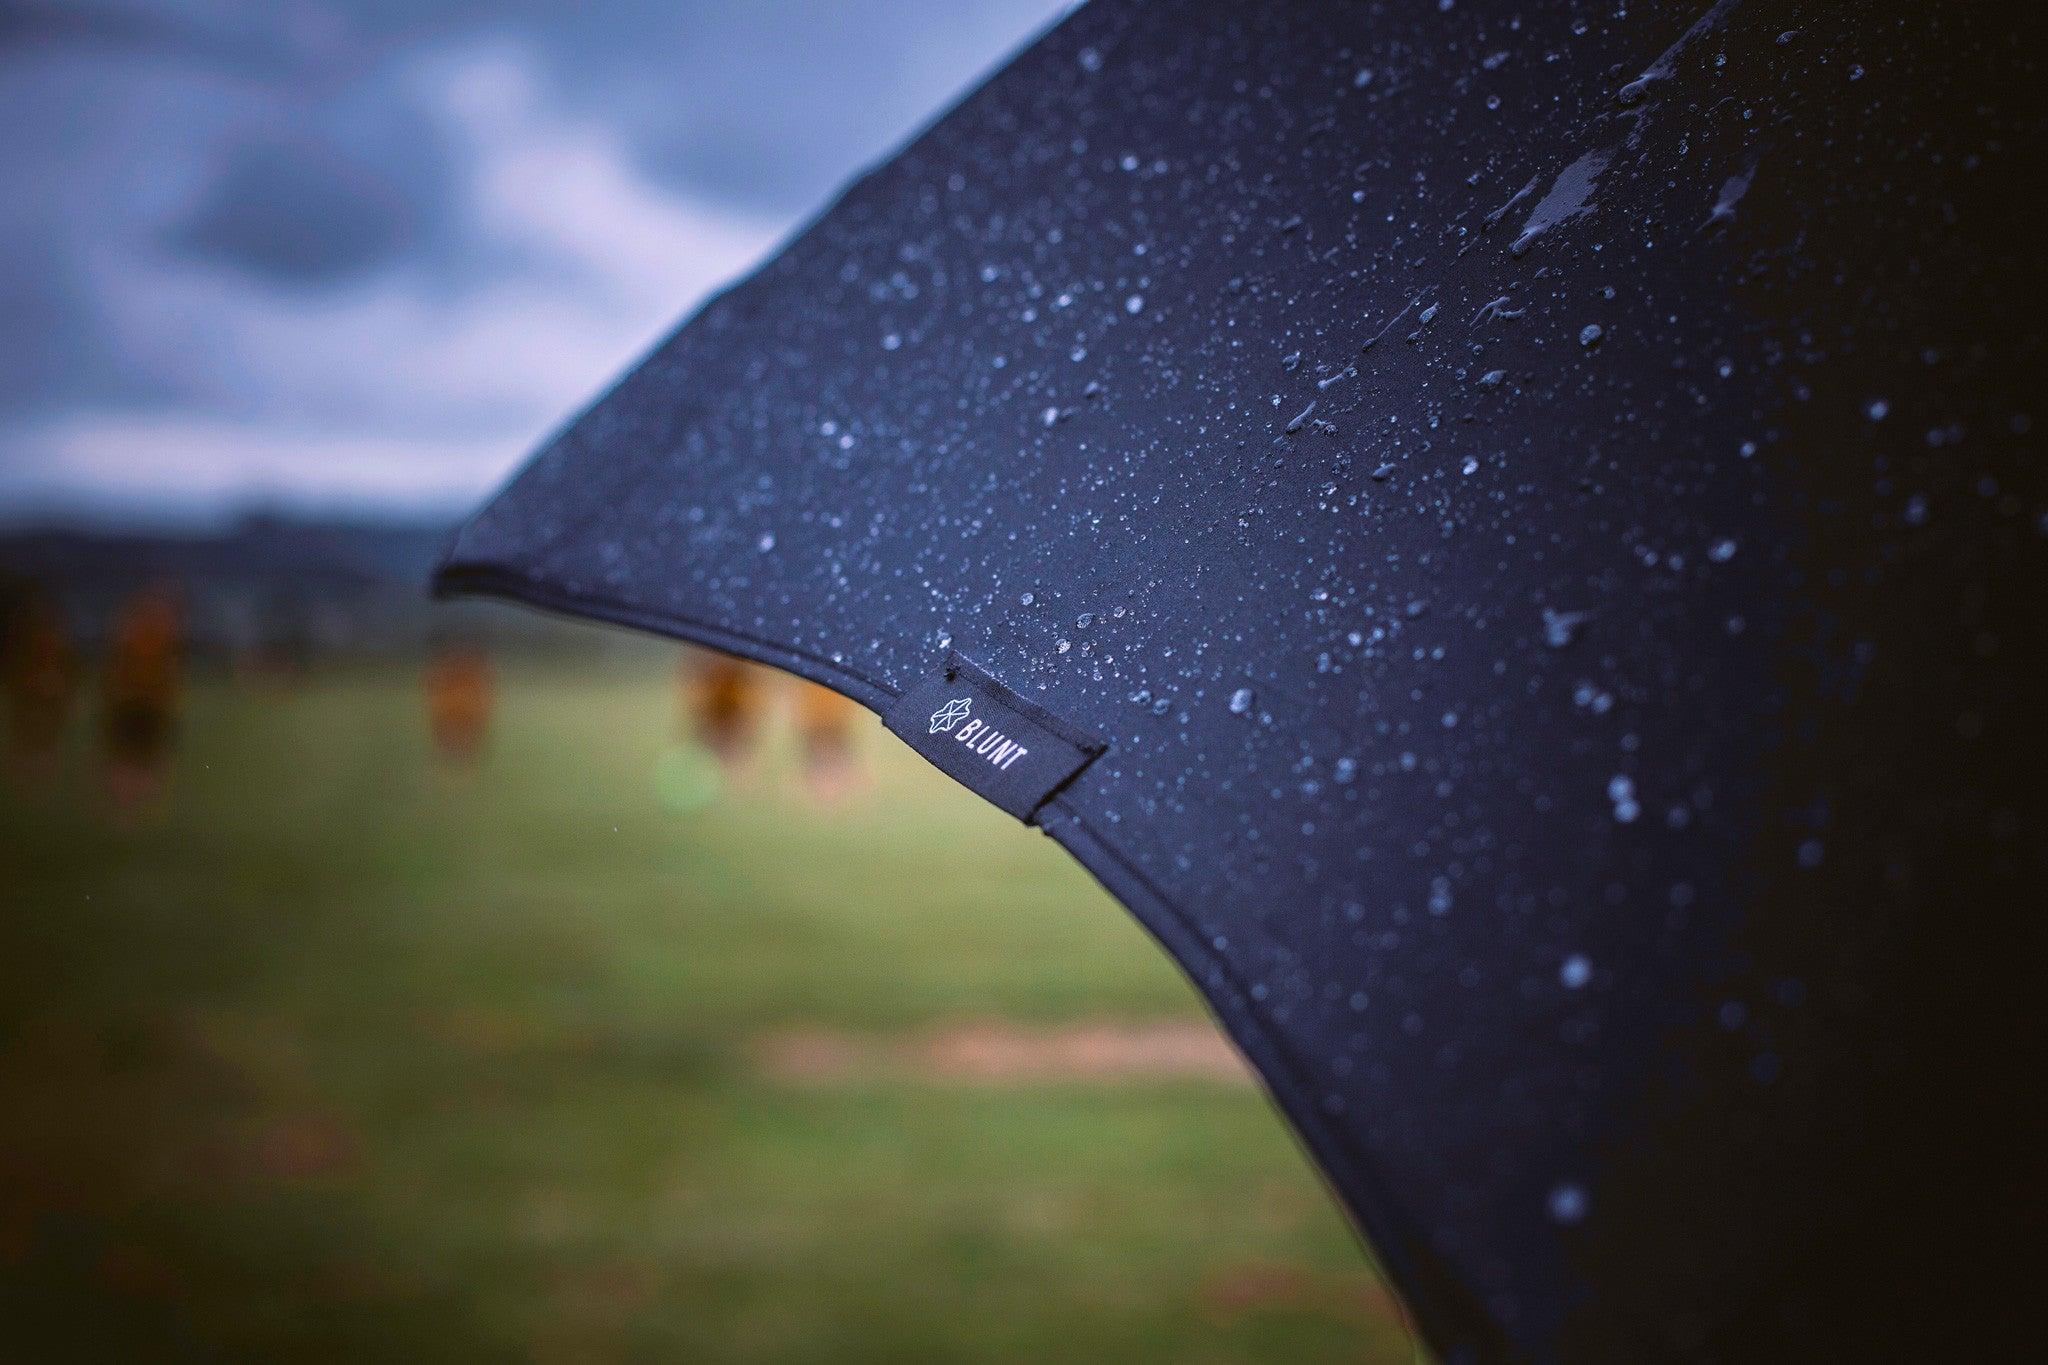 Golf Blunt Umbrella Lifestyle Shot